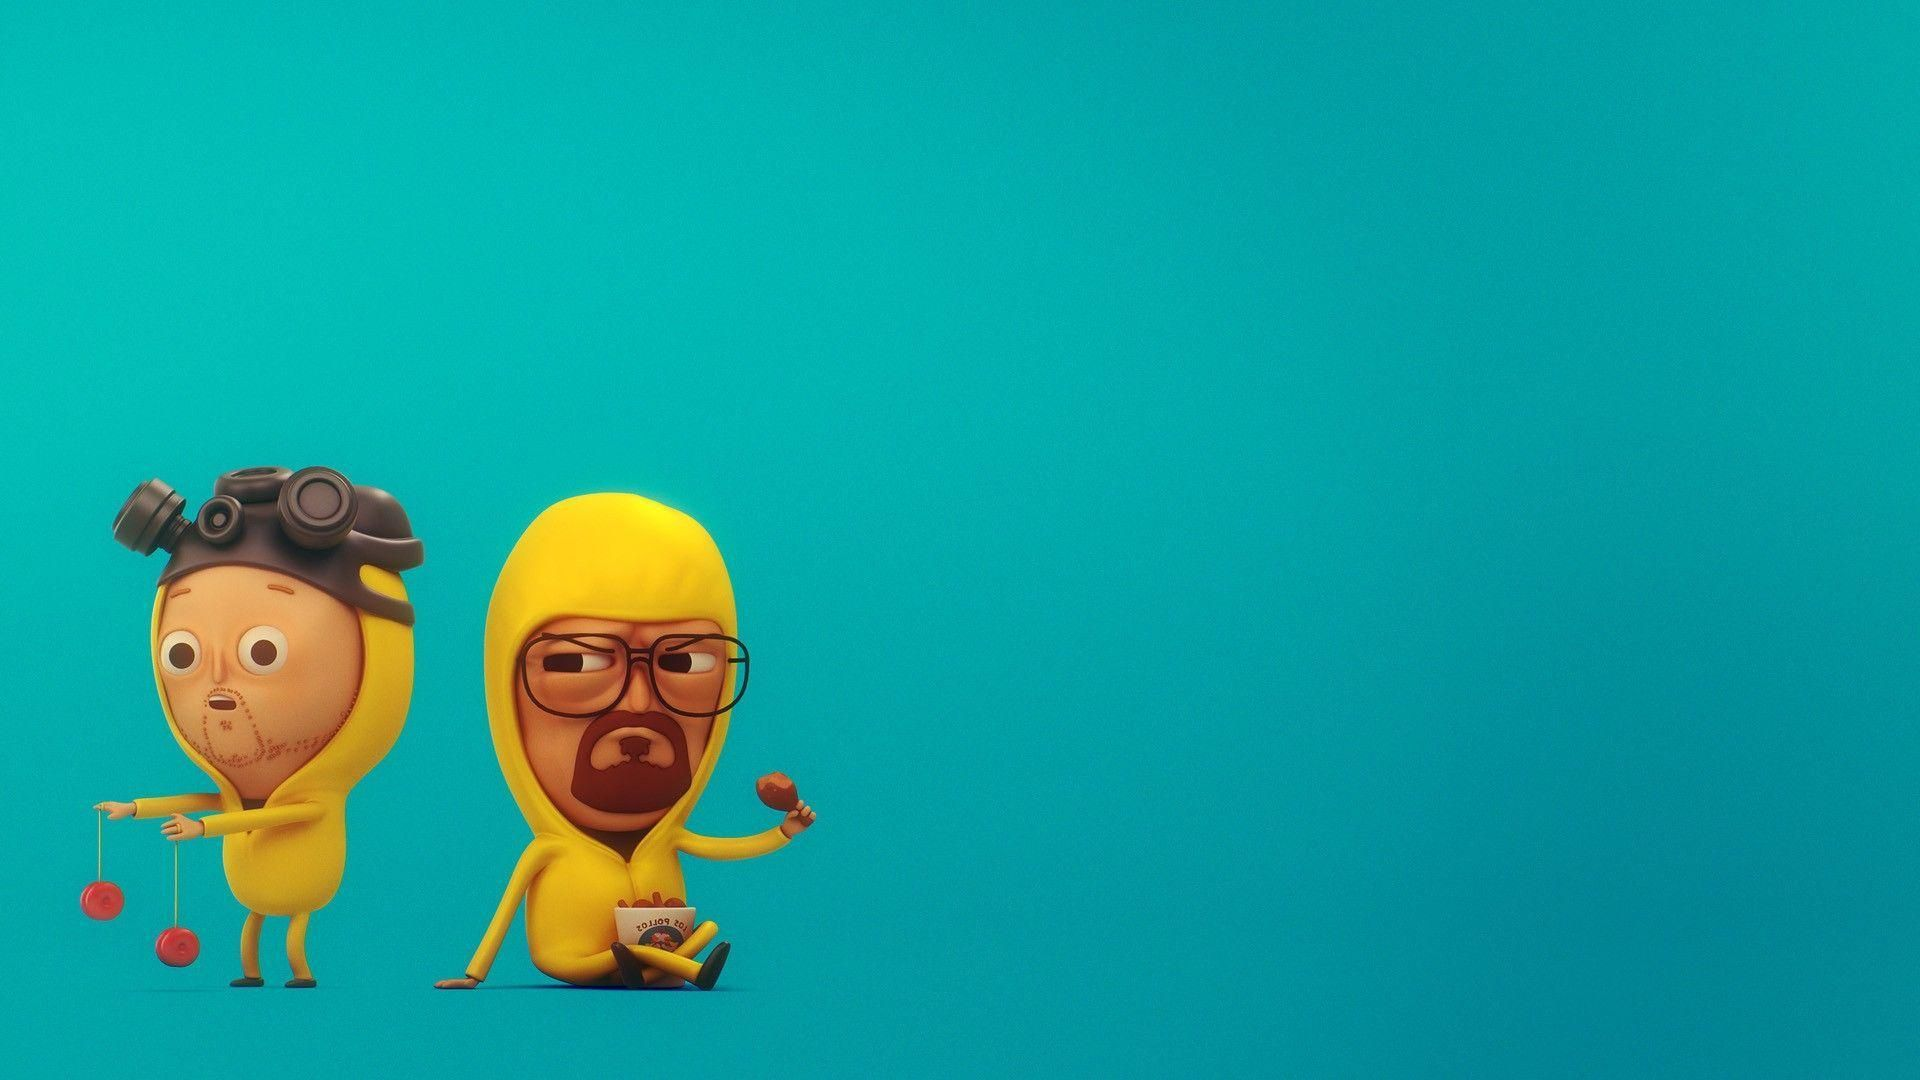 Breaking Bad Wallpapers For Iphone